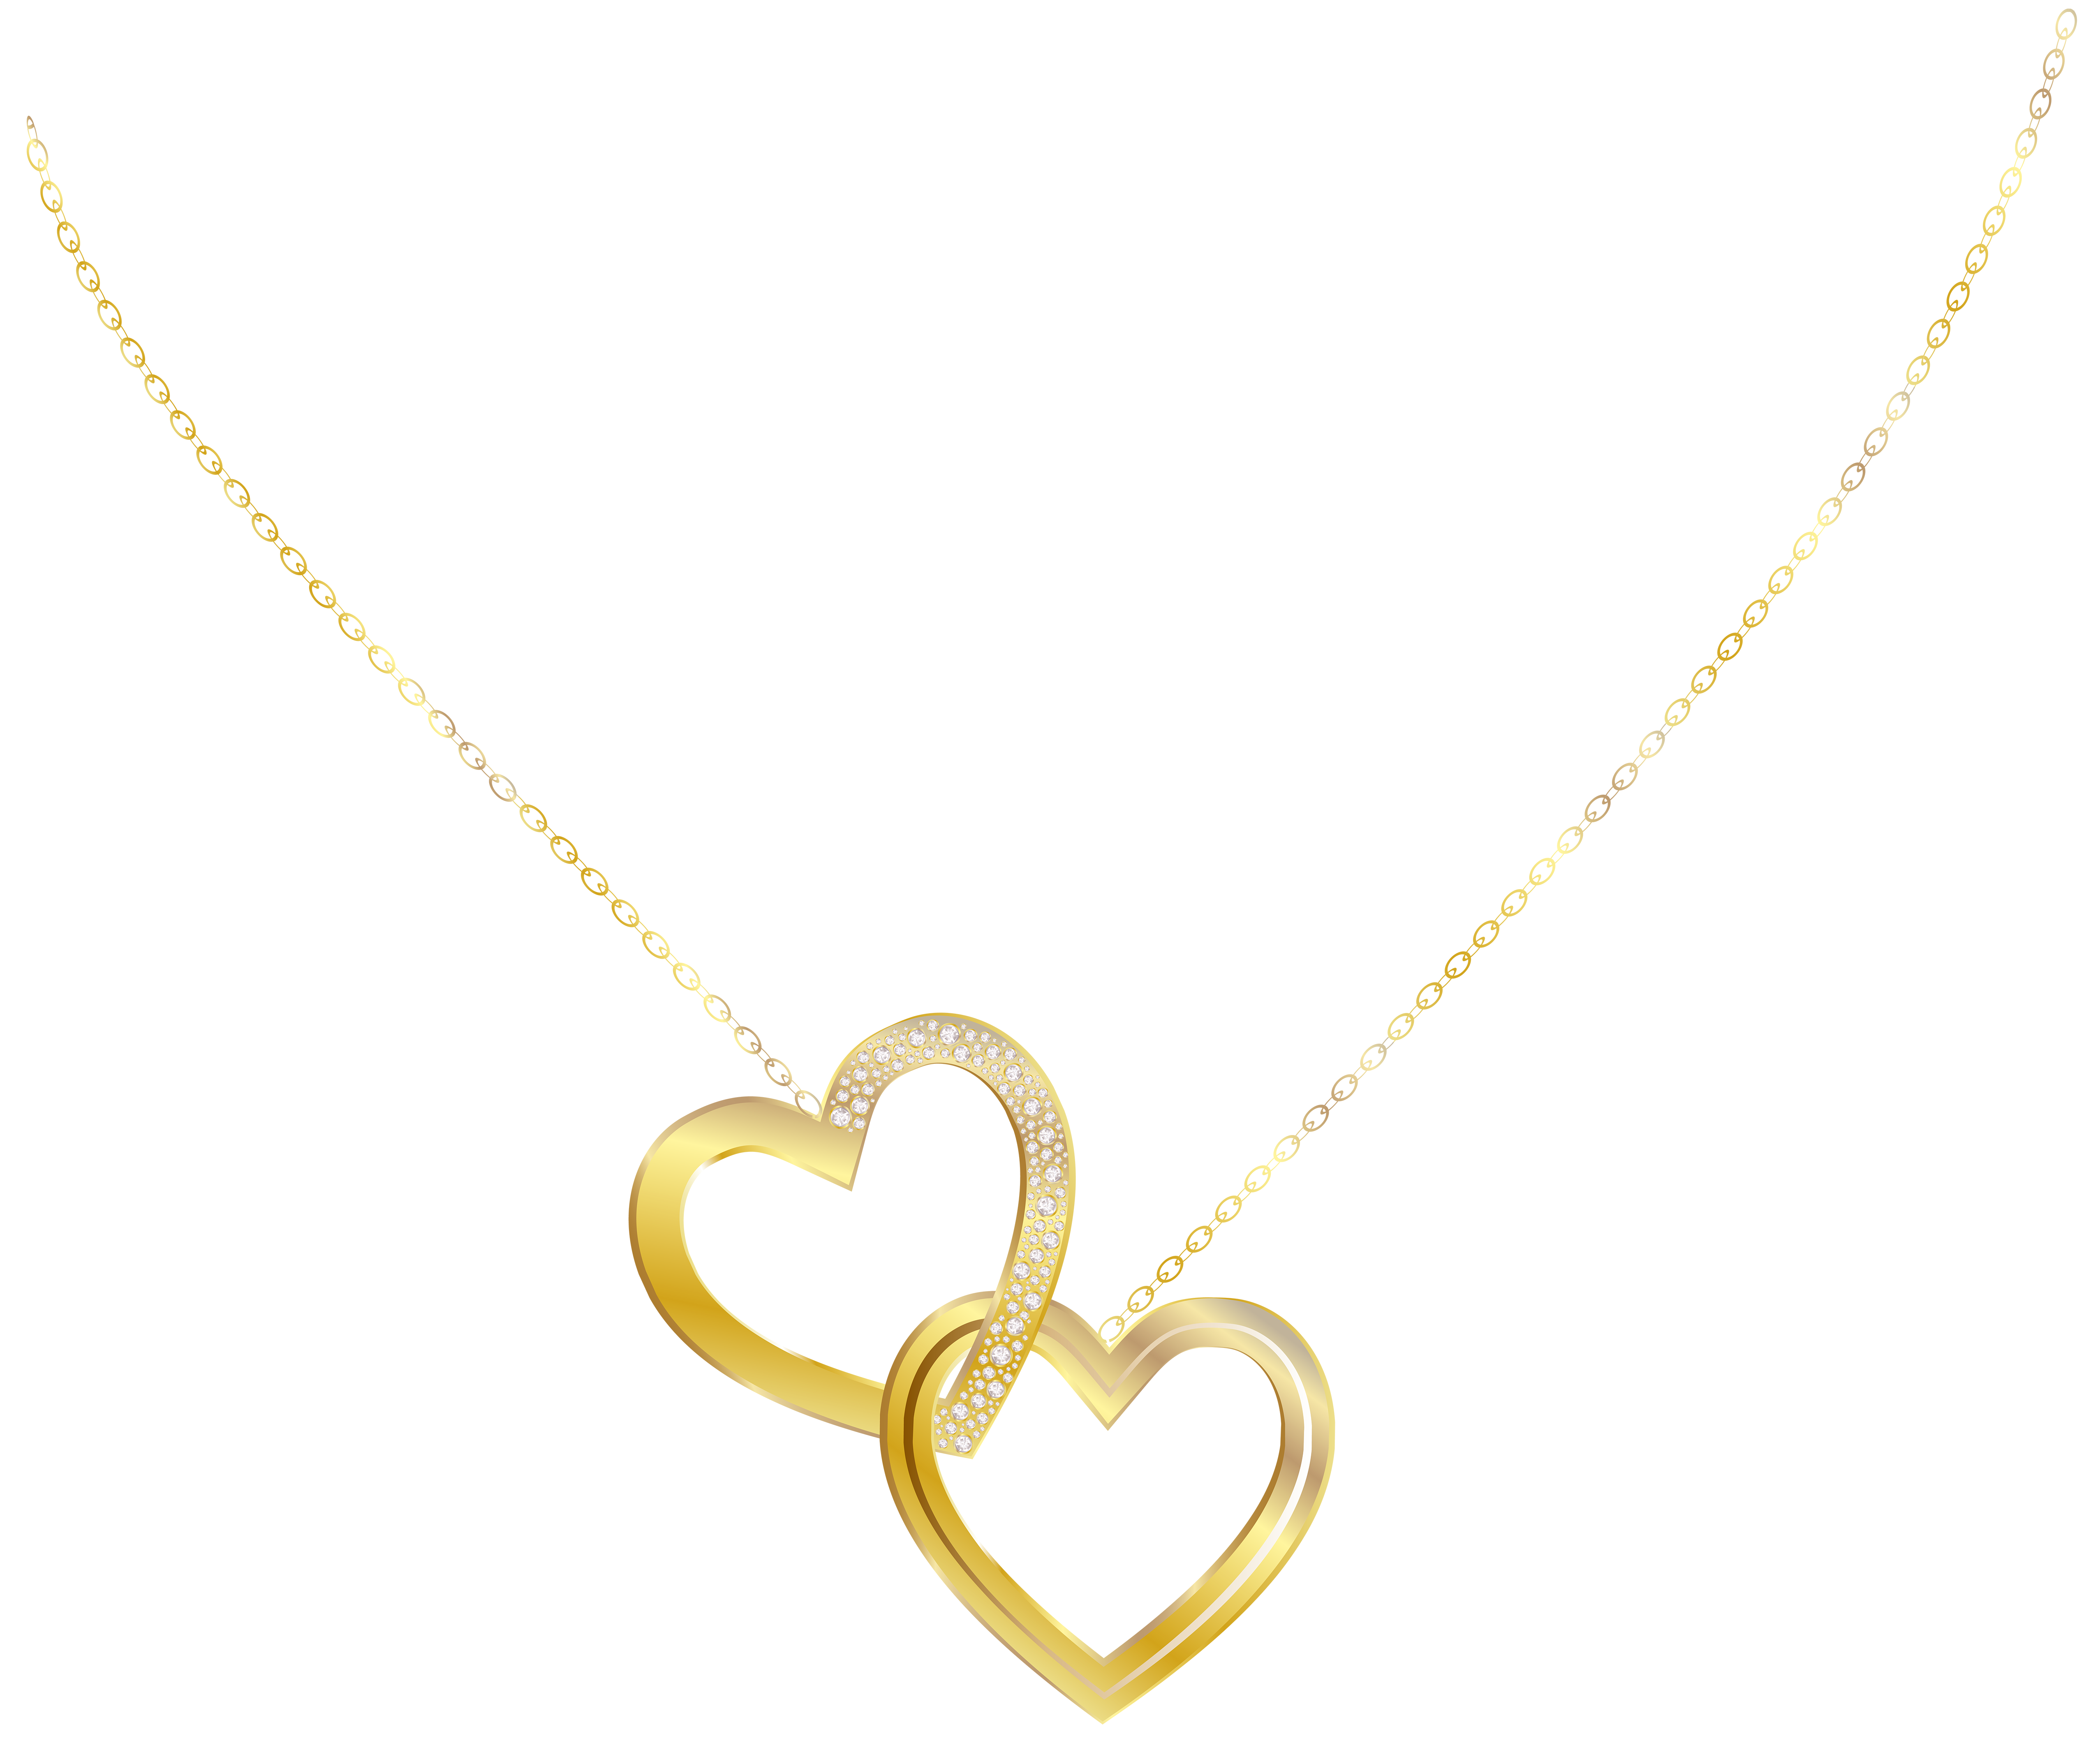 Download necklace free png. Chain clipart transparent background